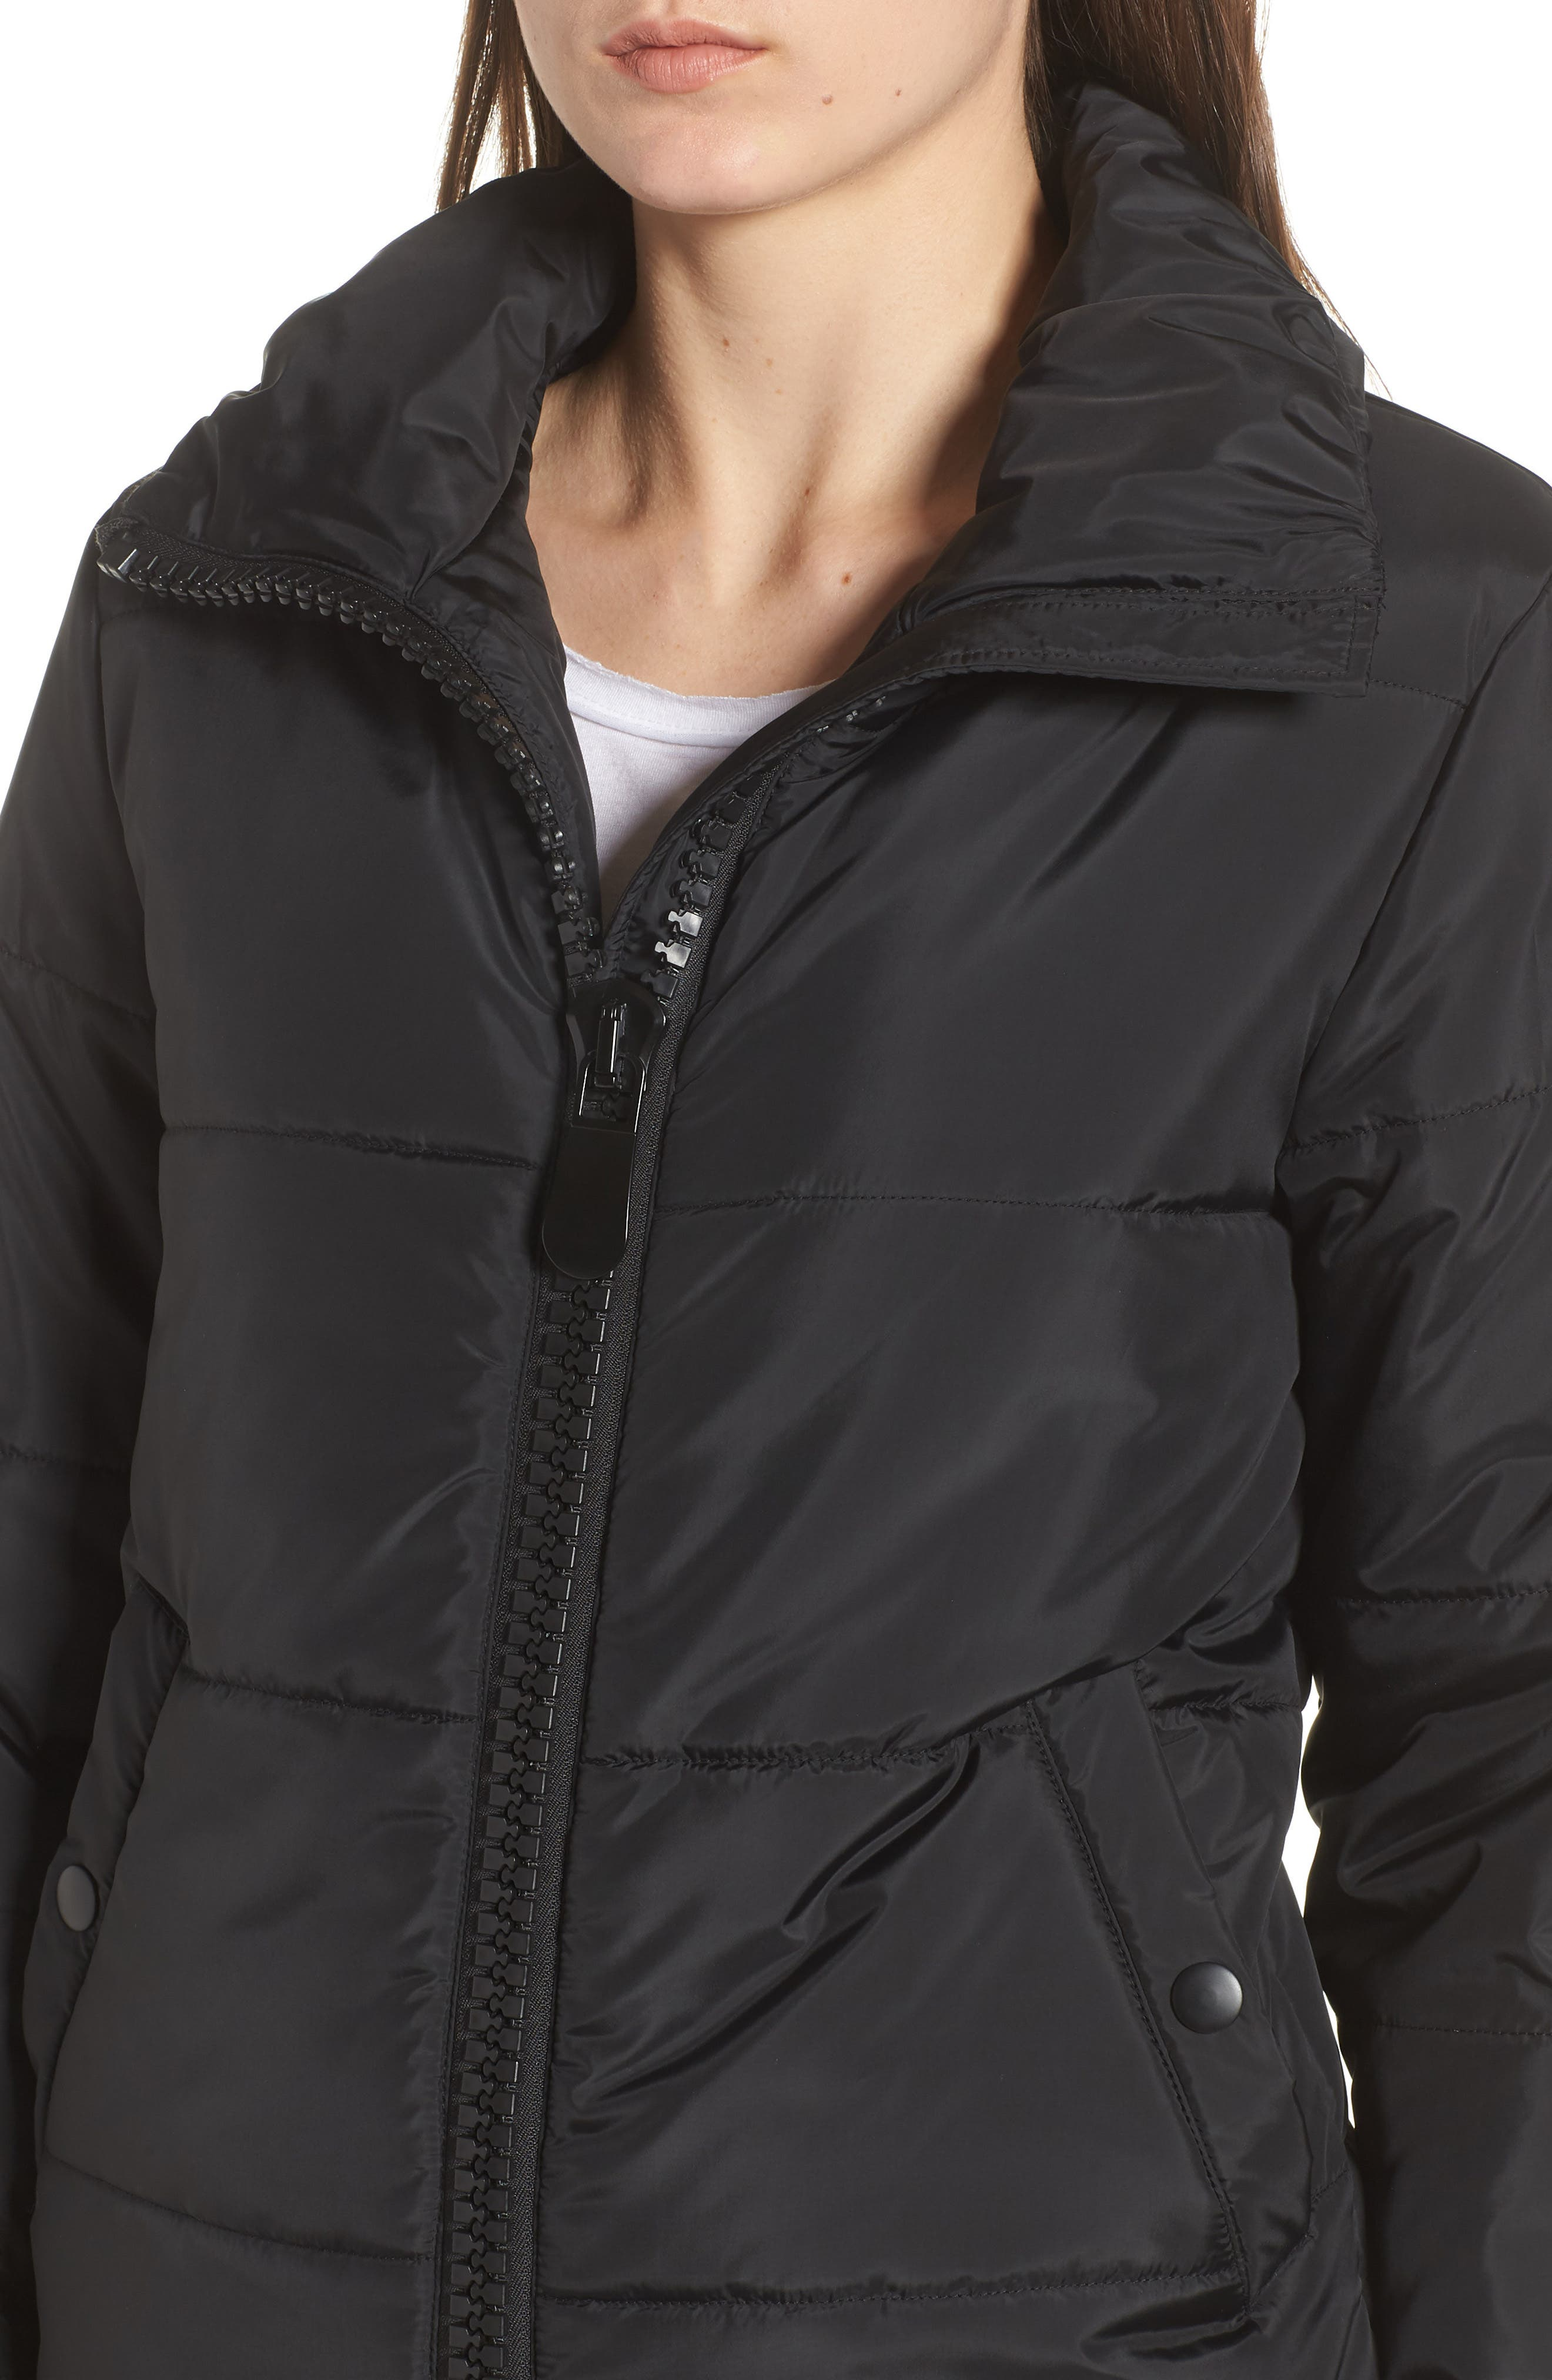 Rail Quilted Puffer Jacket,                             Alternate thumbnail 4, color,                             BLACK